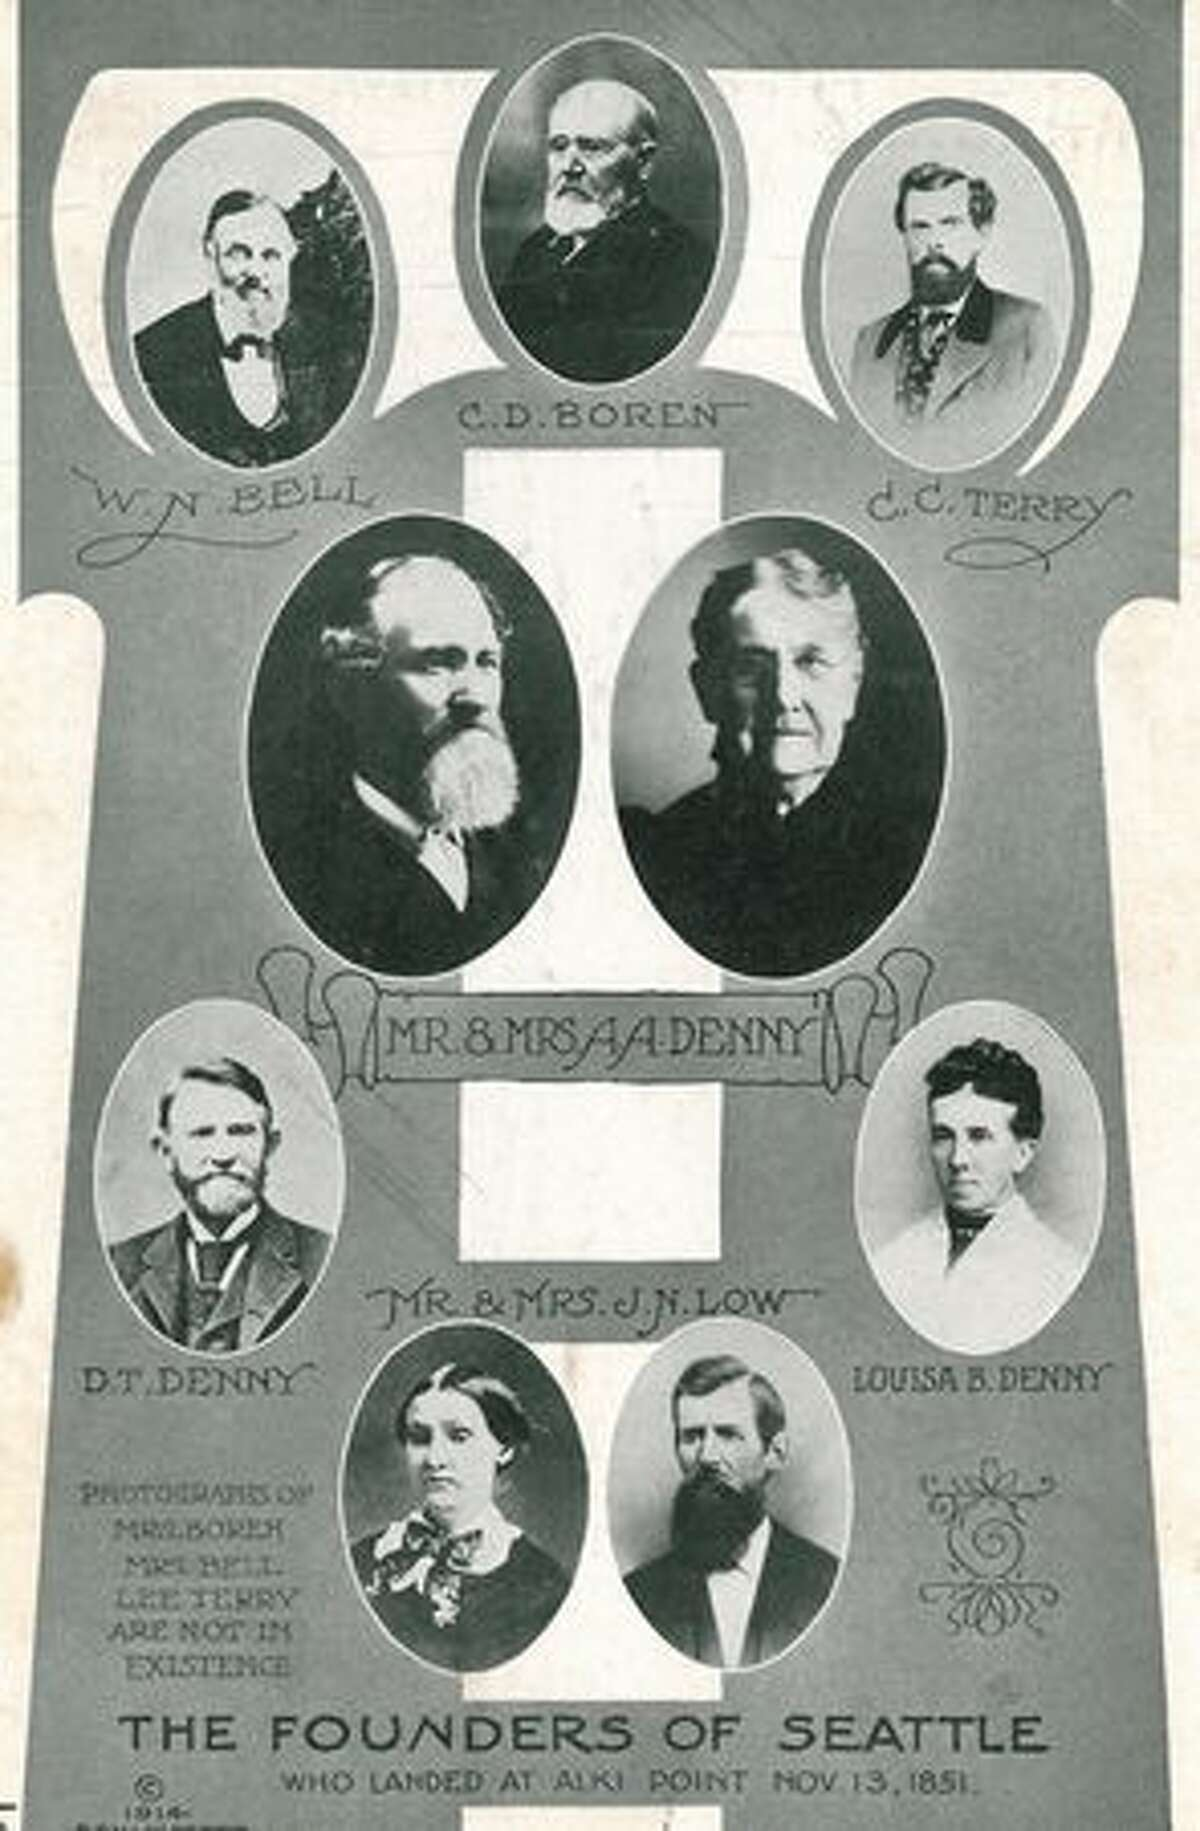 P-I file photos of early Seattle founders.